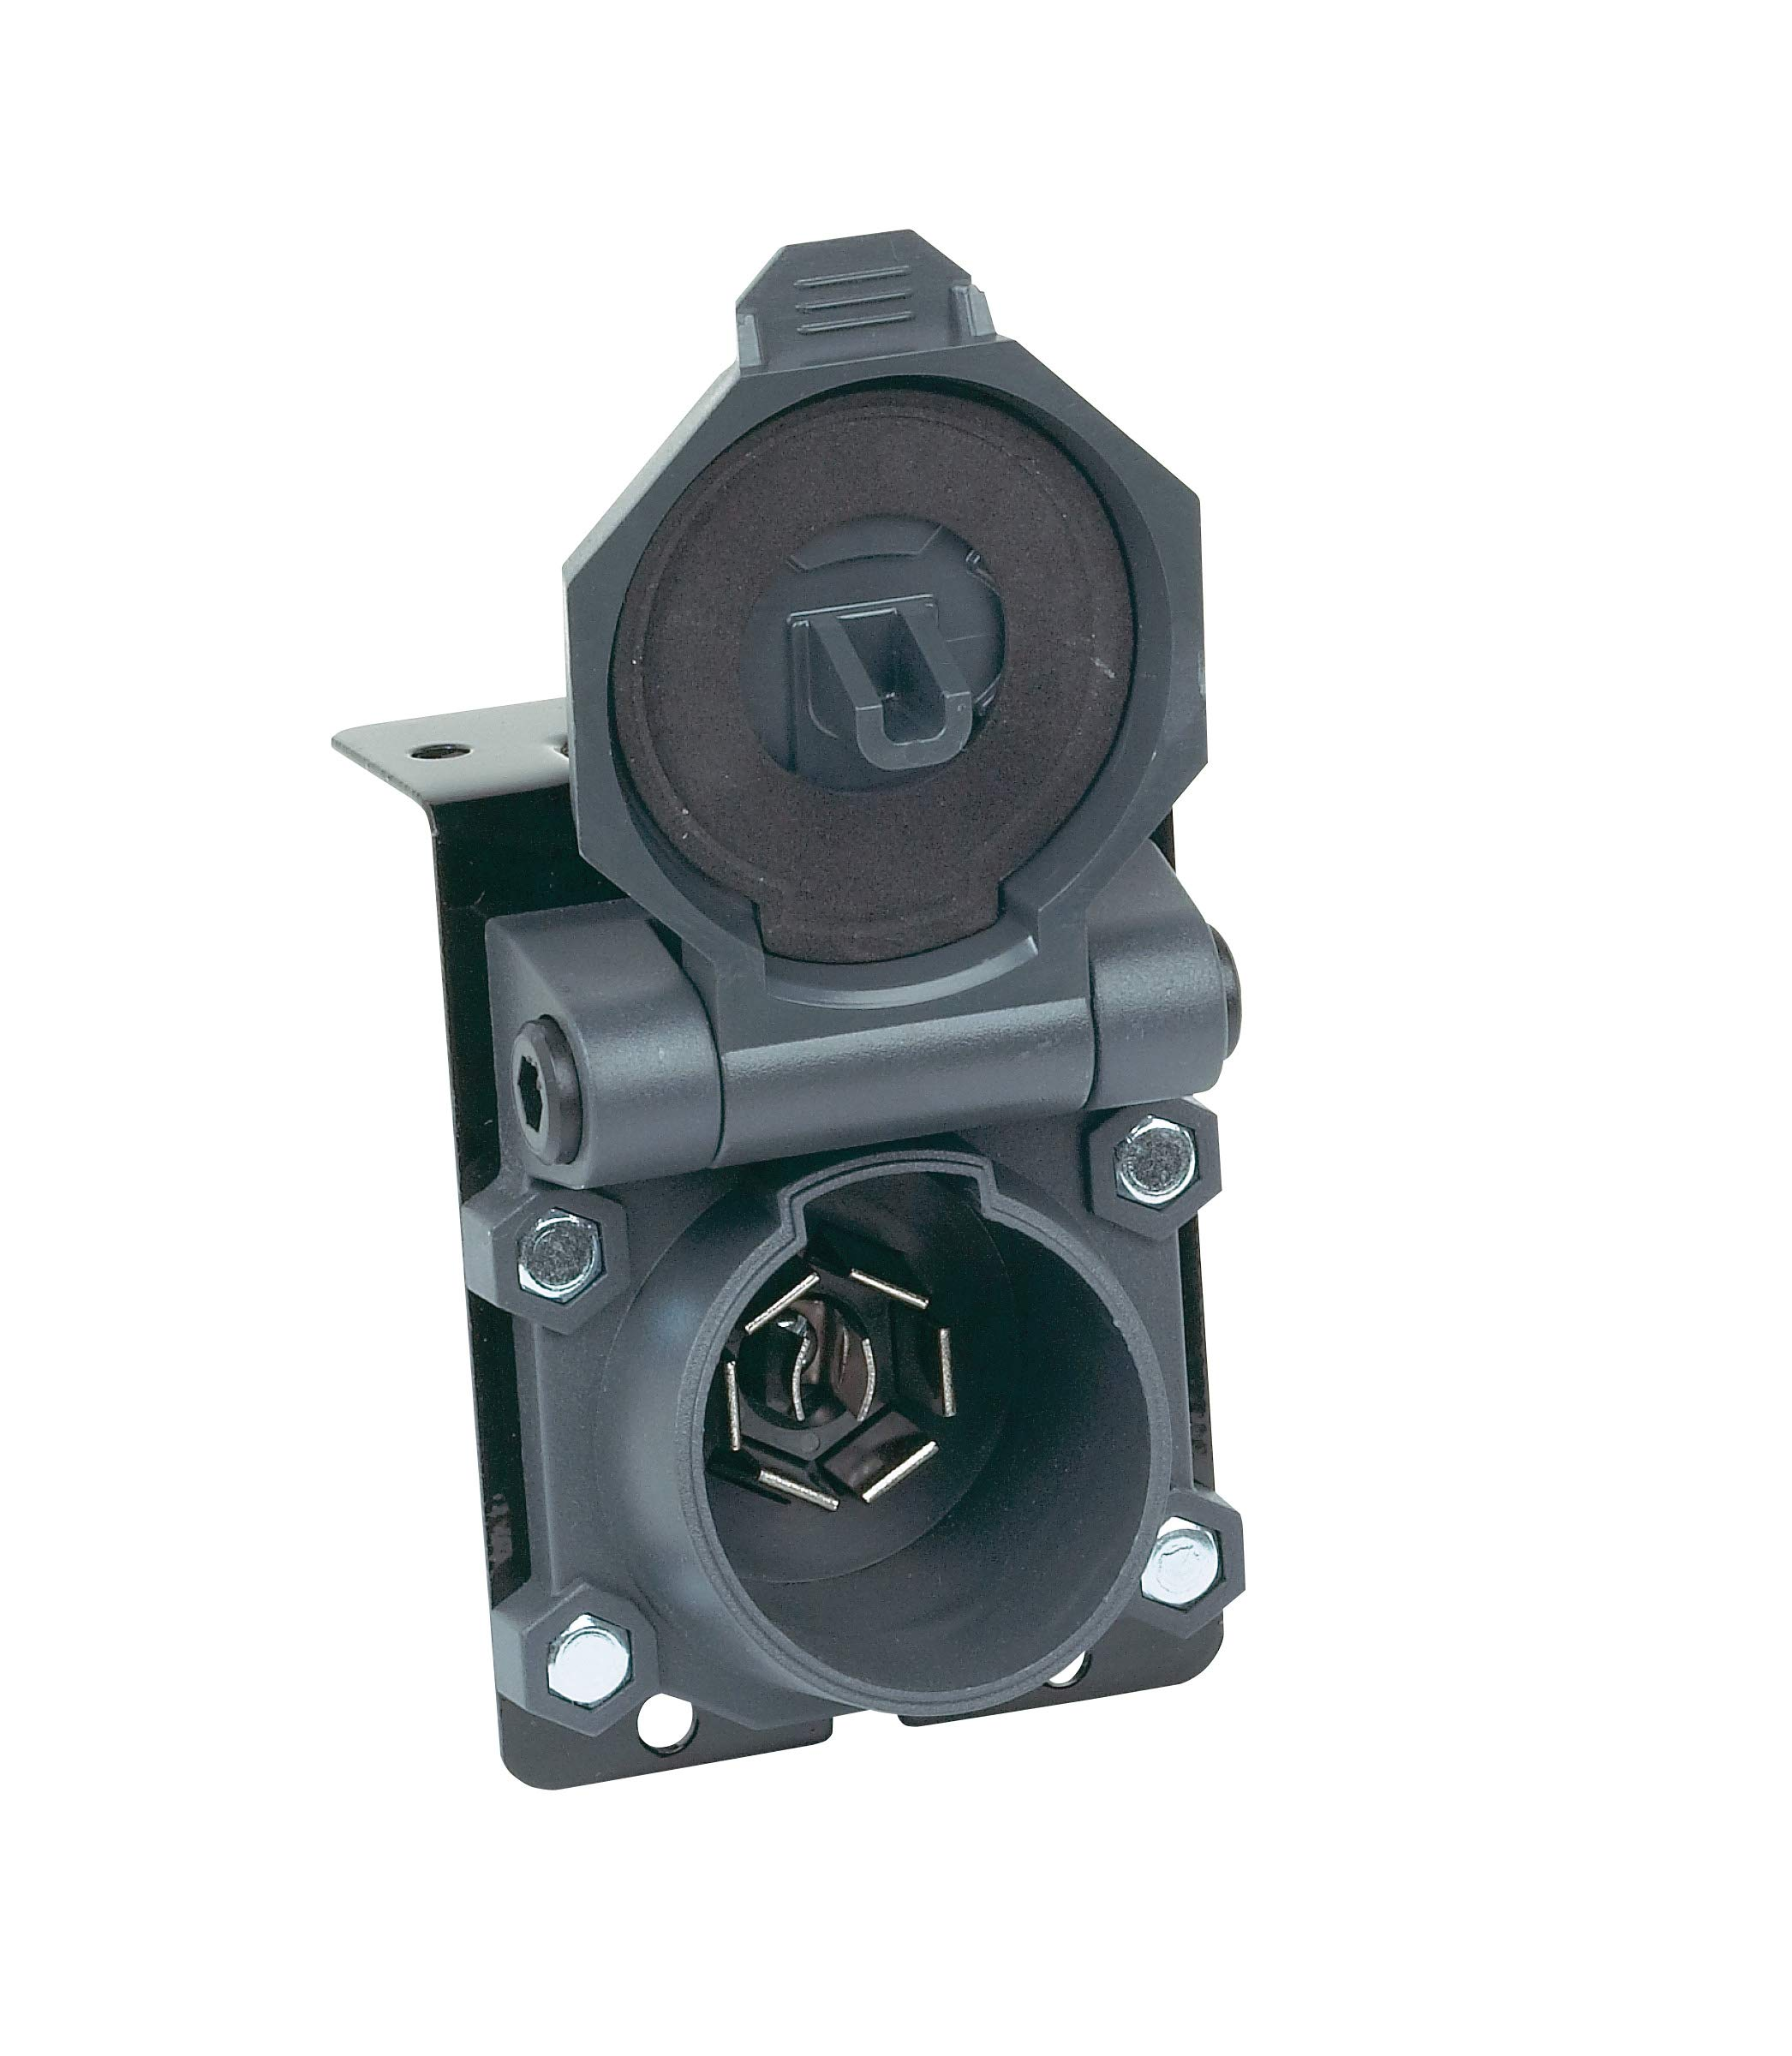 Hopkins 48480 Endurance 7-Way Tow Vehicle End Socket by Endurance